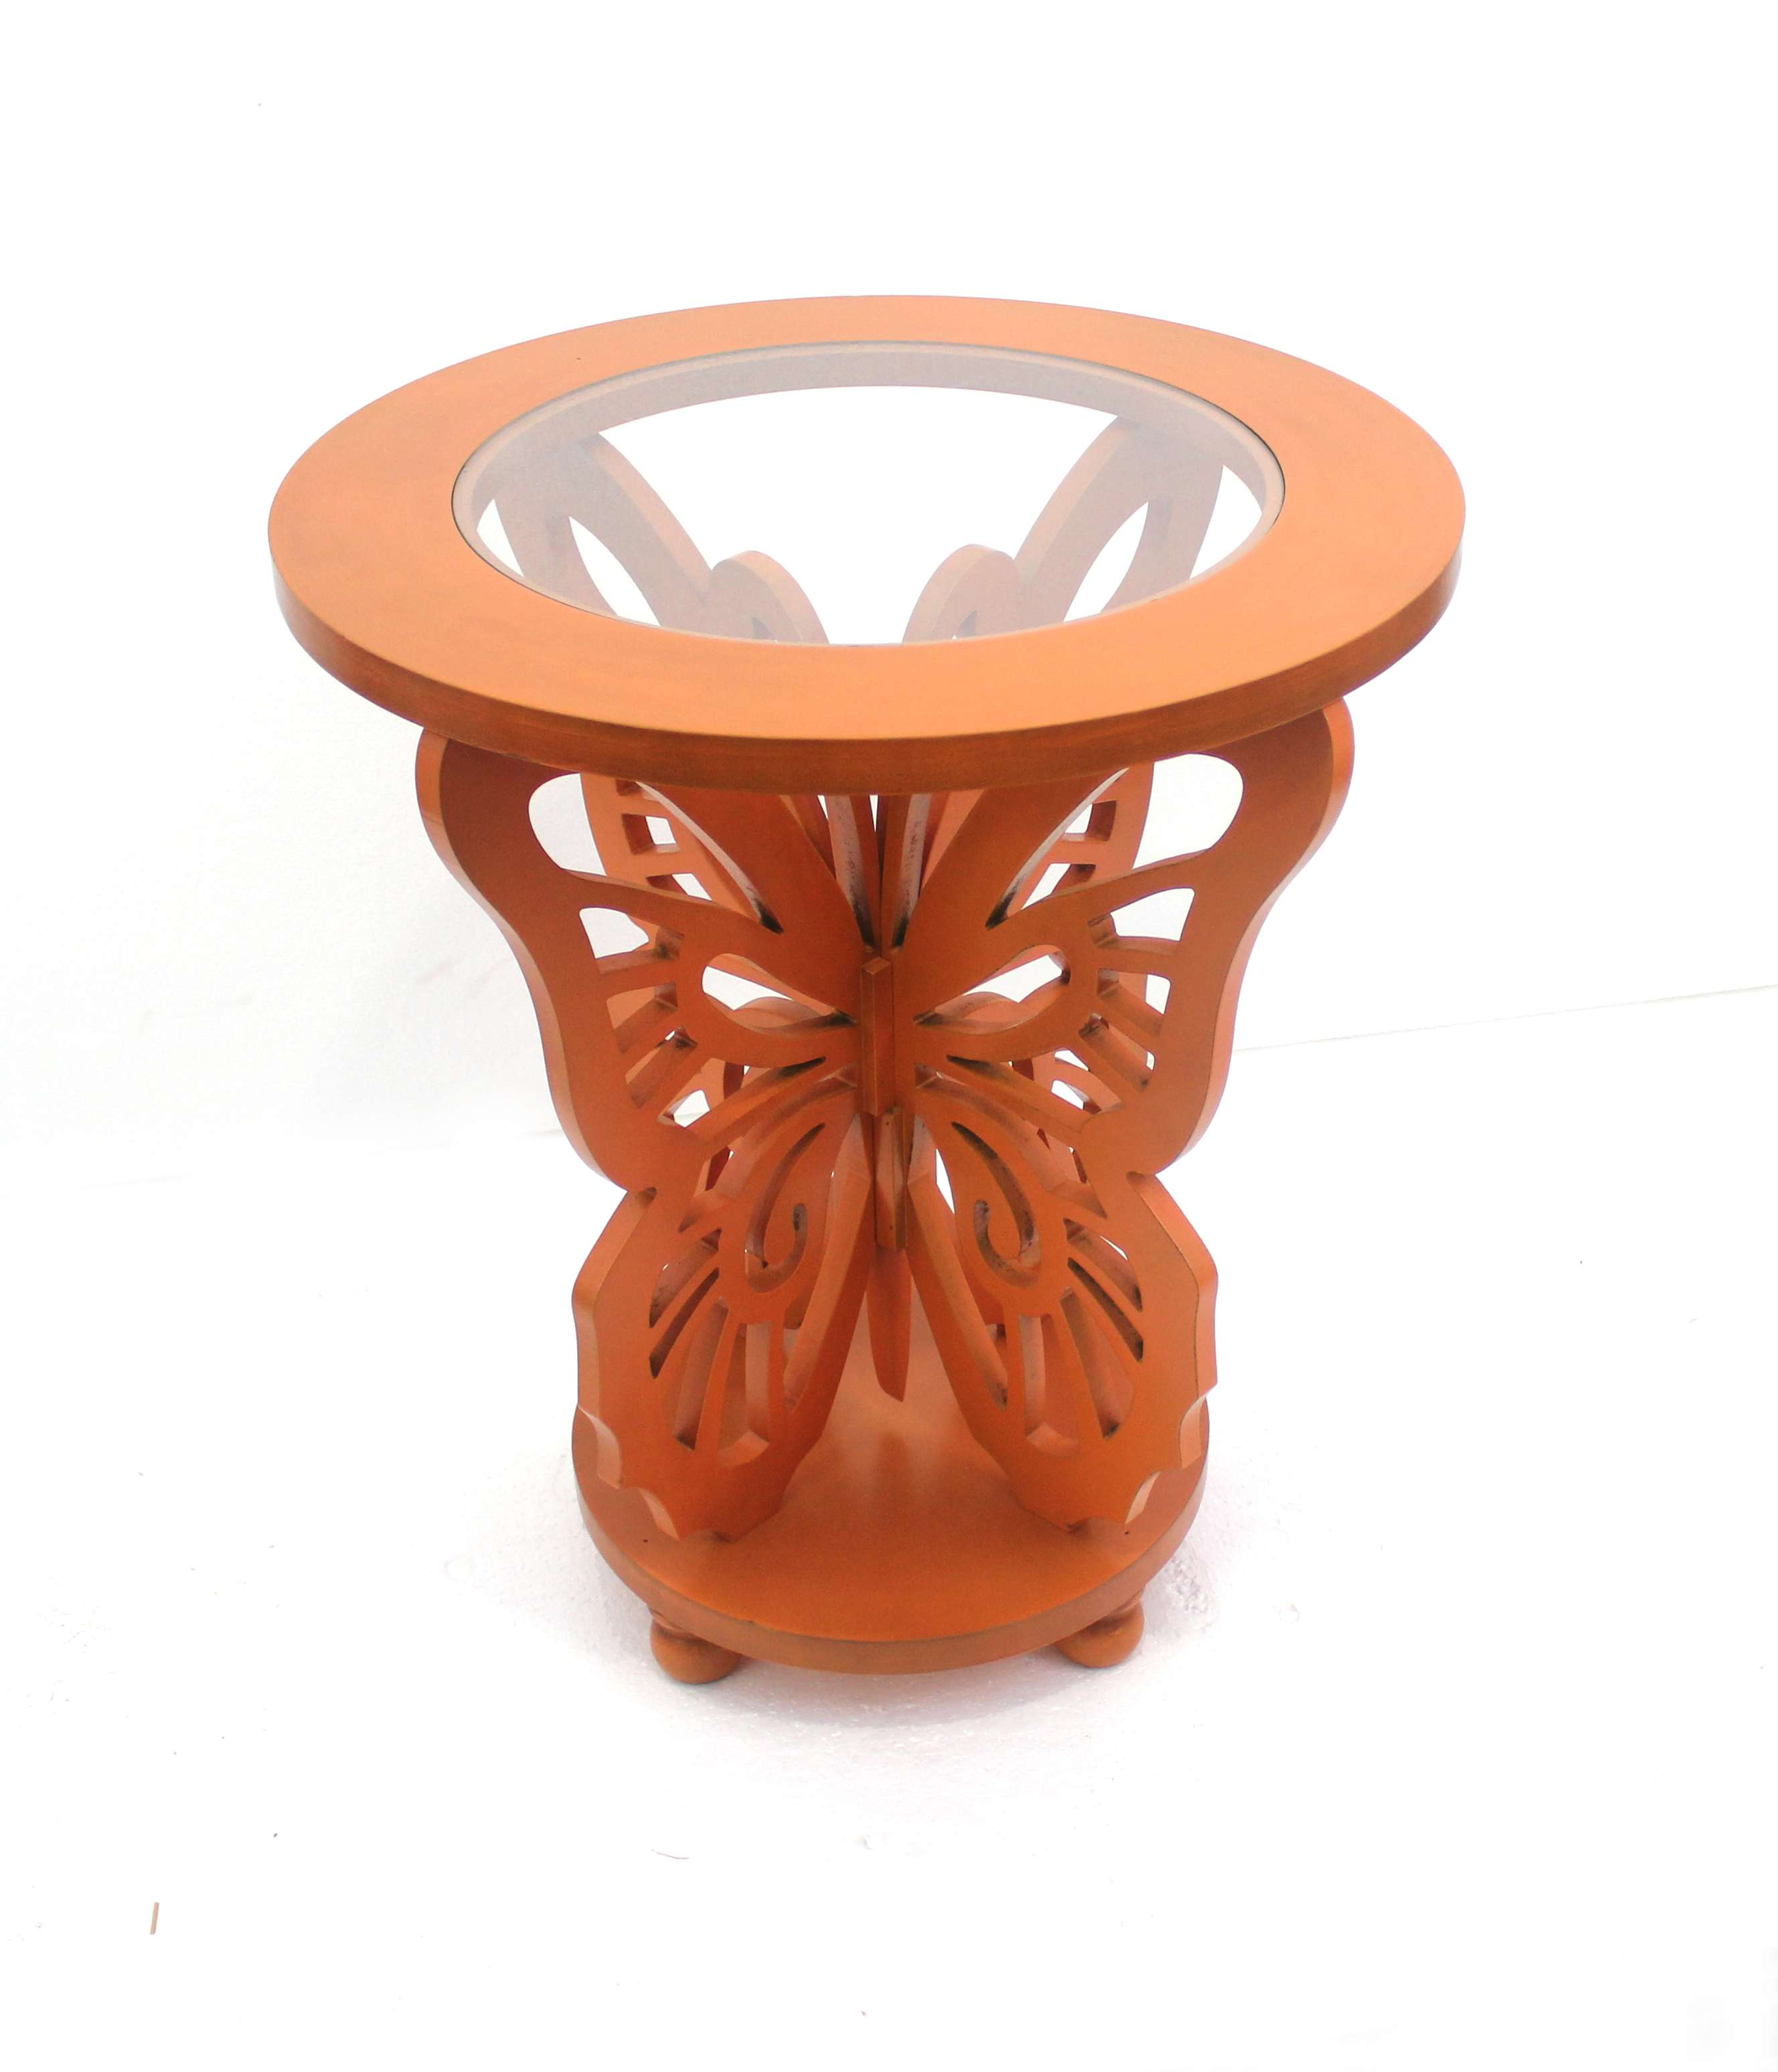 teton home orange wood butterfly accent table with glass top teak dining set entrance way tables clearance deck furniture inch round decorator cloth unique decor end tablecloth